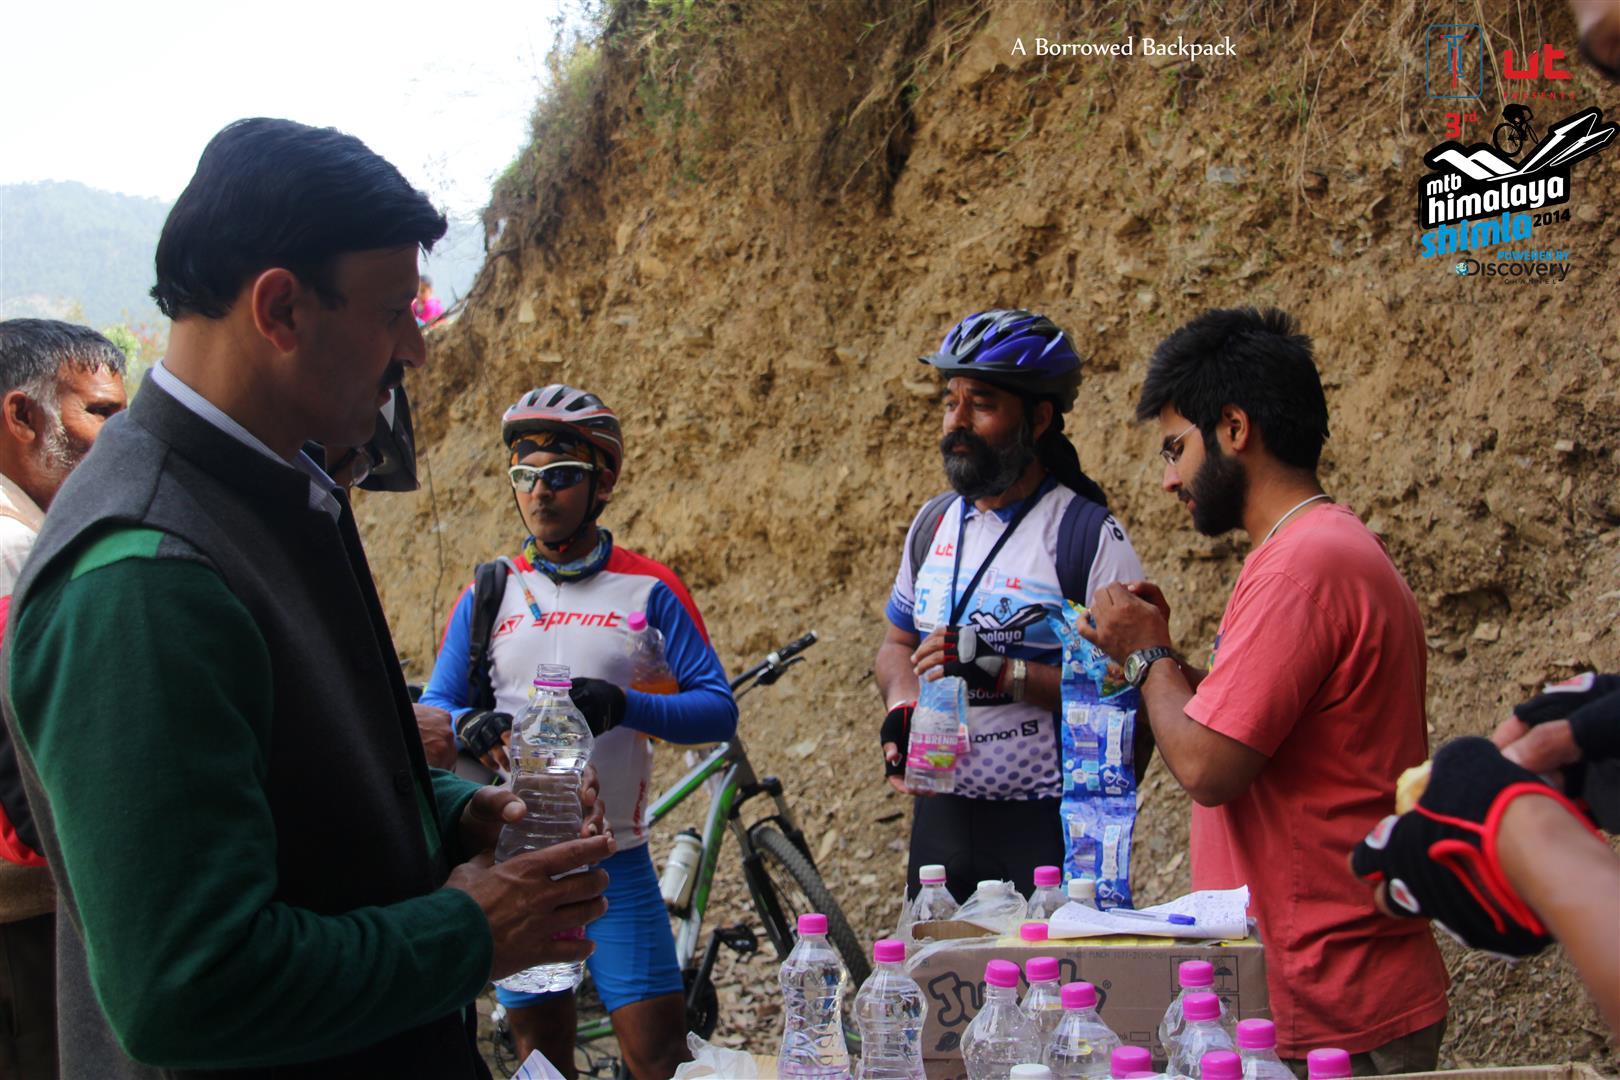 Volunteer with MTB Himalaya